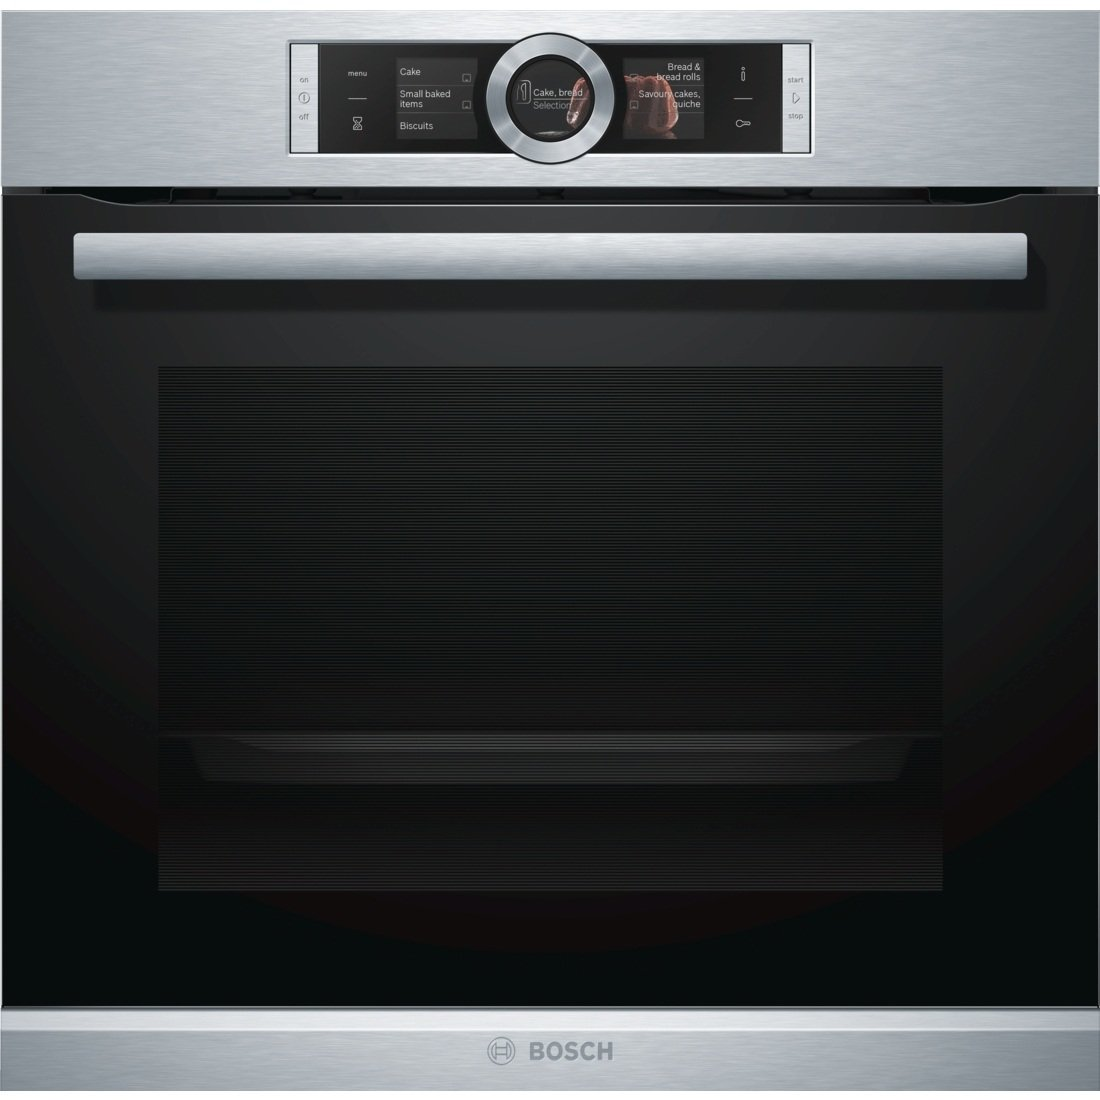 Bosch Serie 8 HBG6764S1 Built-in Electric 71L 3650 W A + Black, Stainless Steel – Ovens (Medium, Built-in, Electric, A +, Black, Stainless Steel, Top Front)